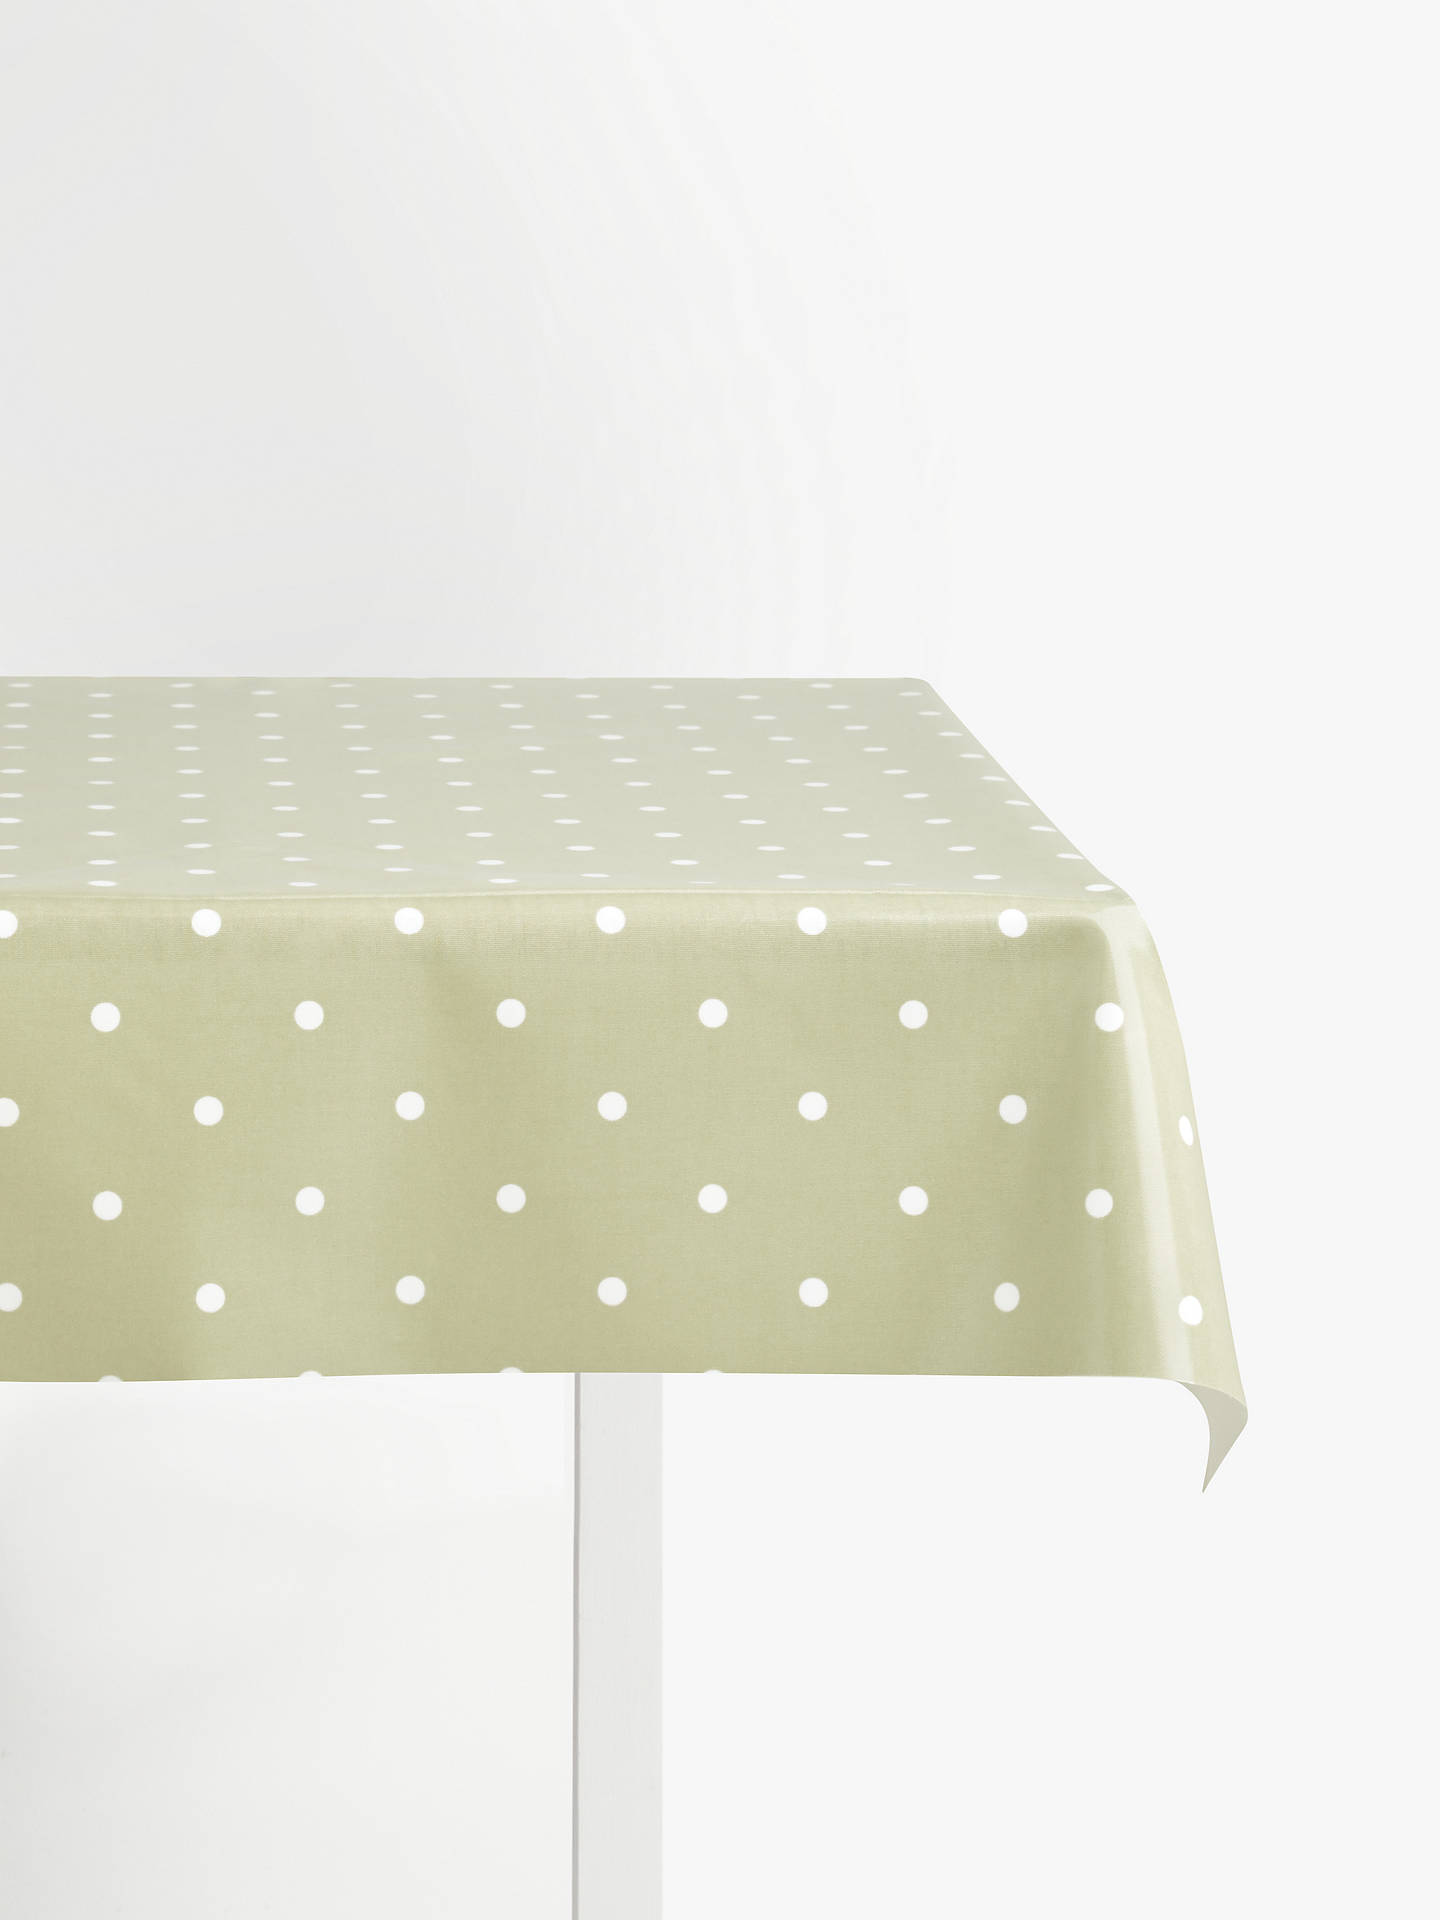 BuyJohn Lewis & Partners New Dots PVC Tablecloth Fabric, Green Online at johnlewis.com